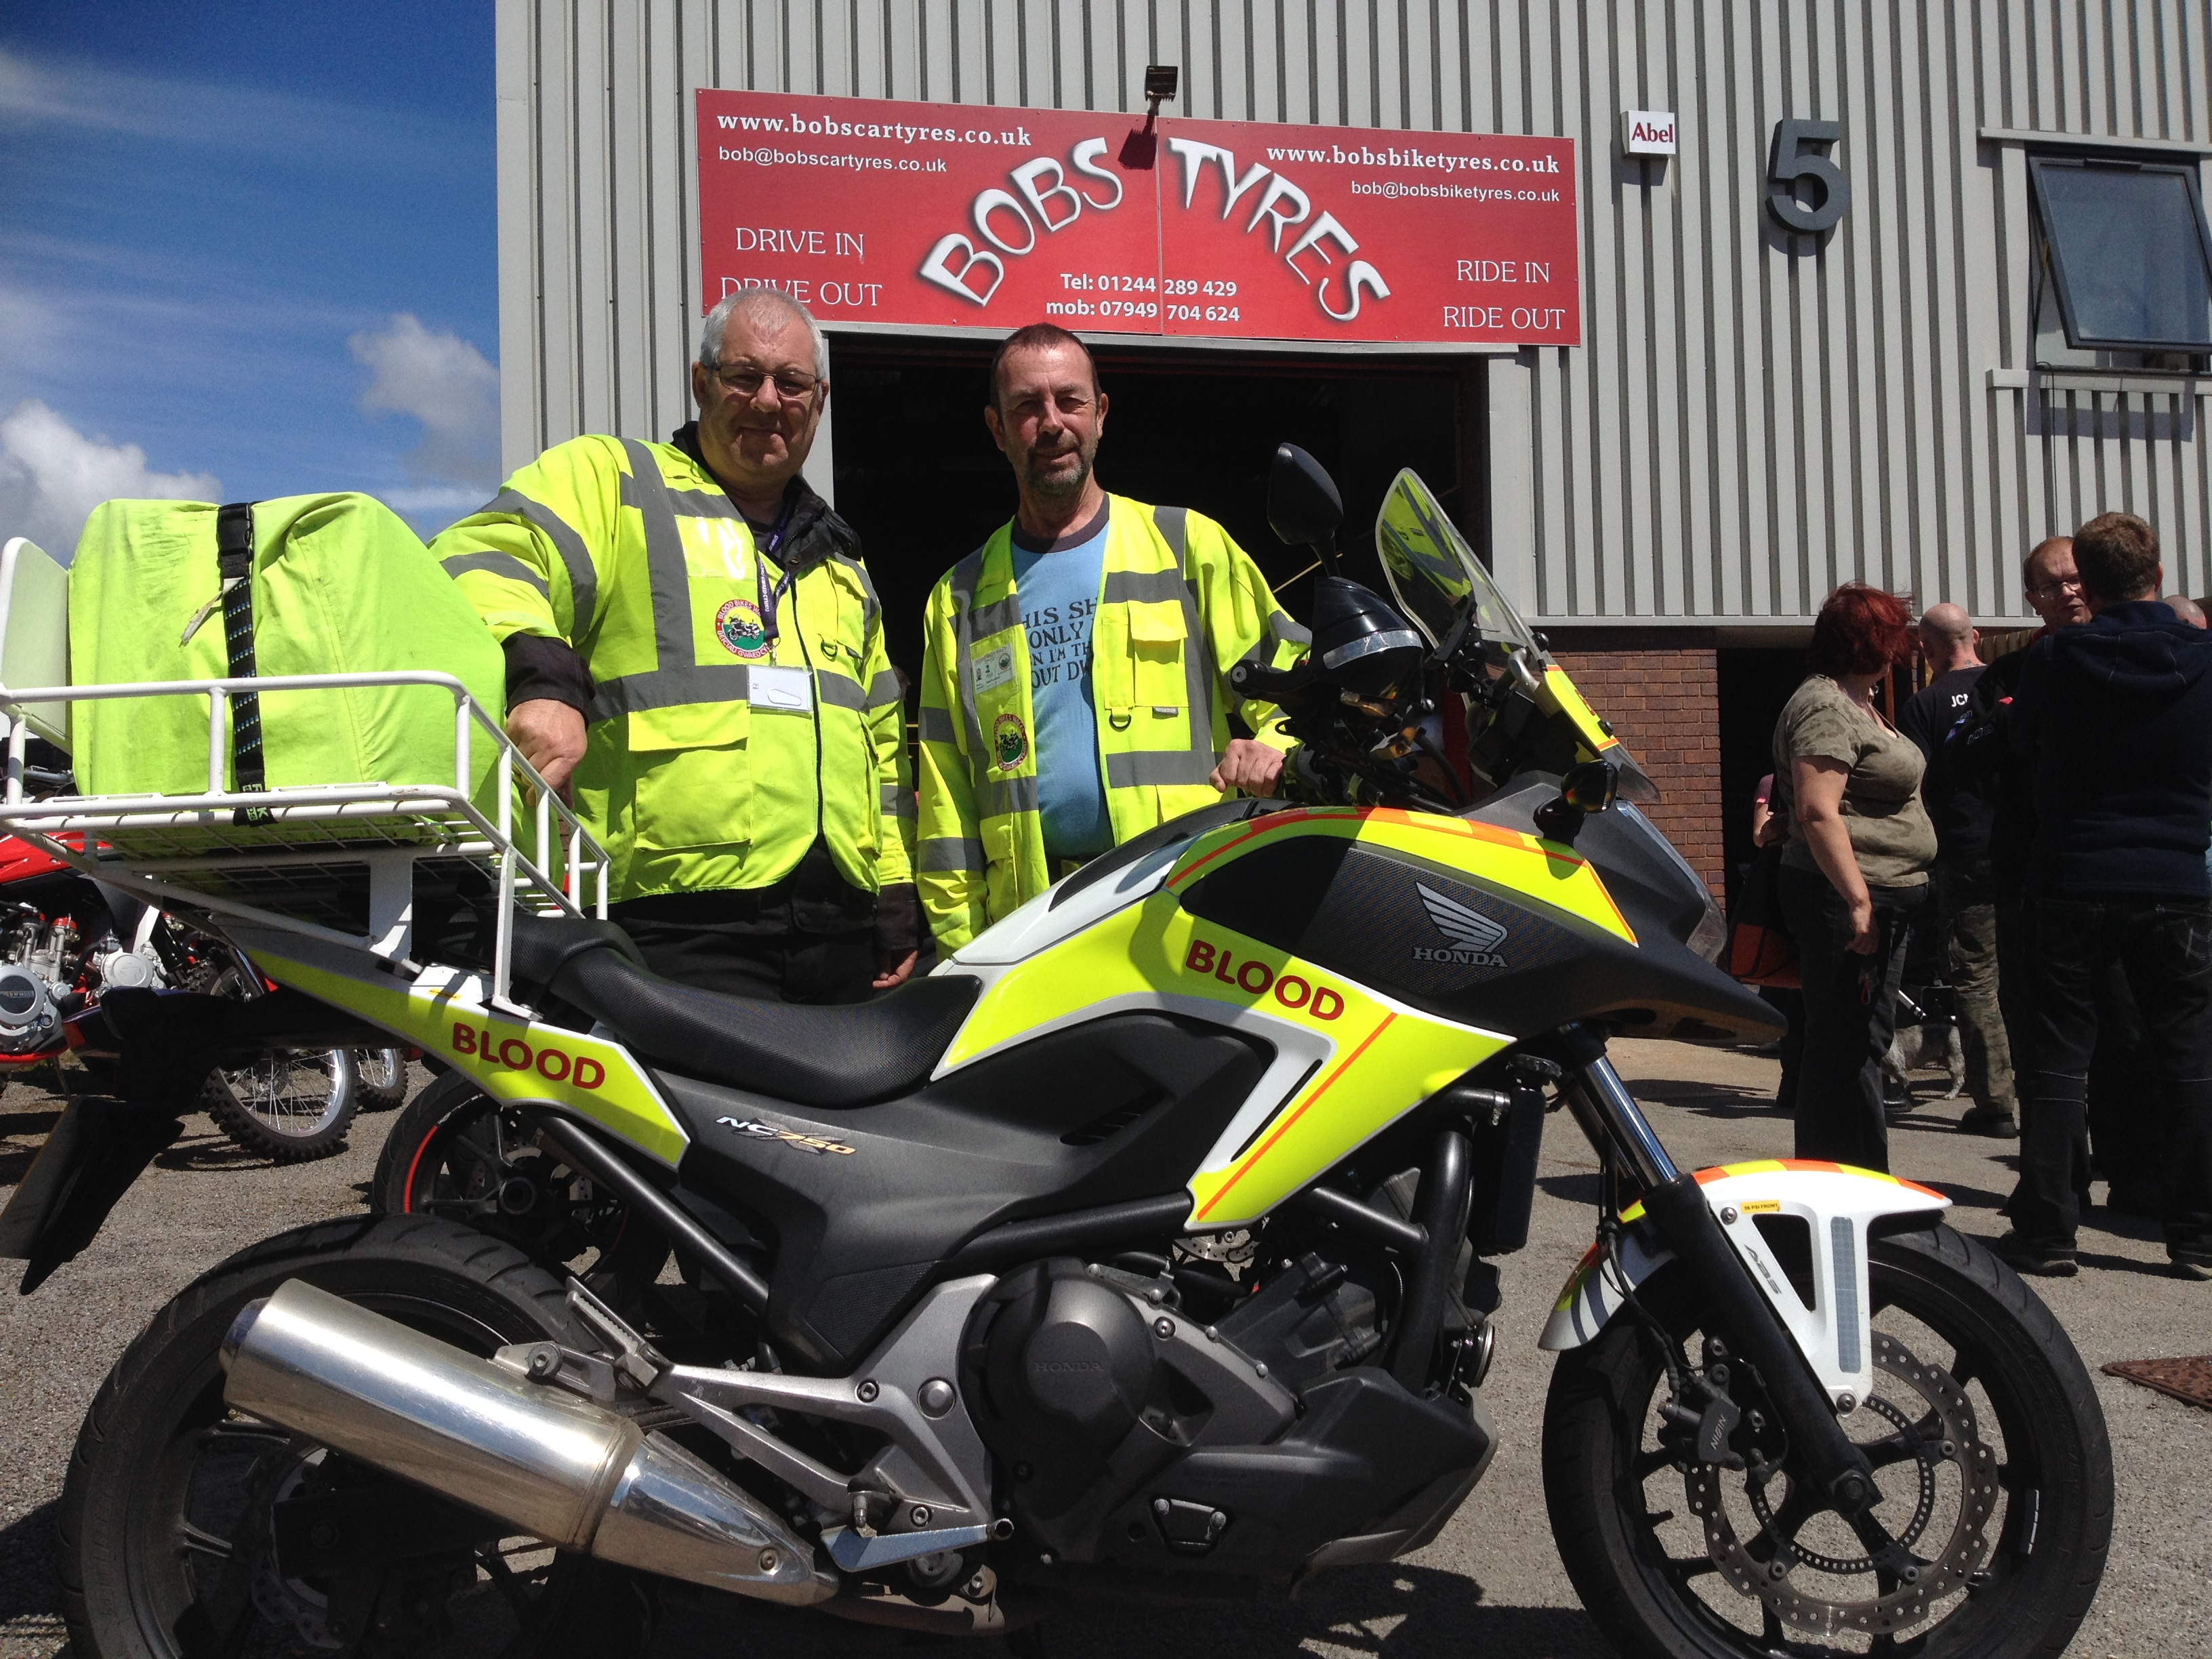 Blood Bikes Wales at Bobs Bike Tyres, Open Day July 2017